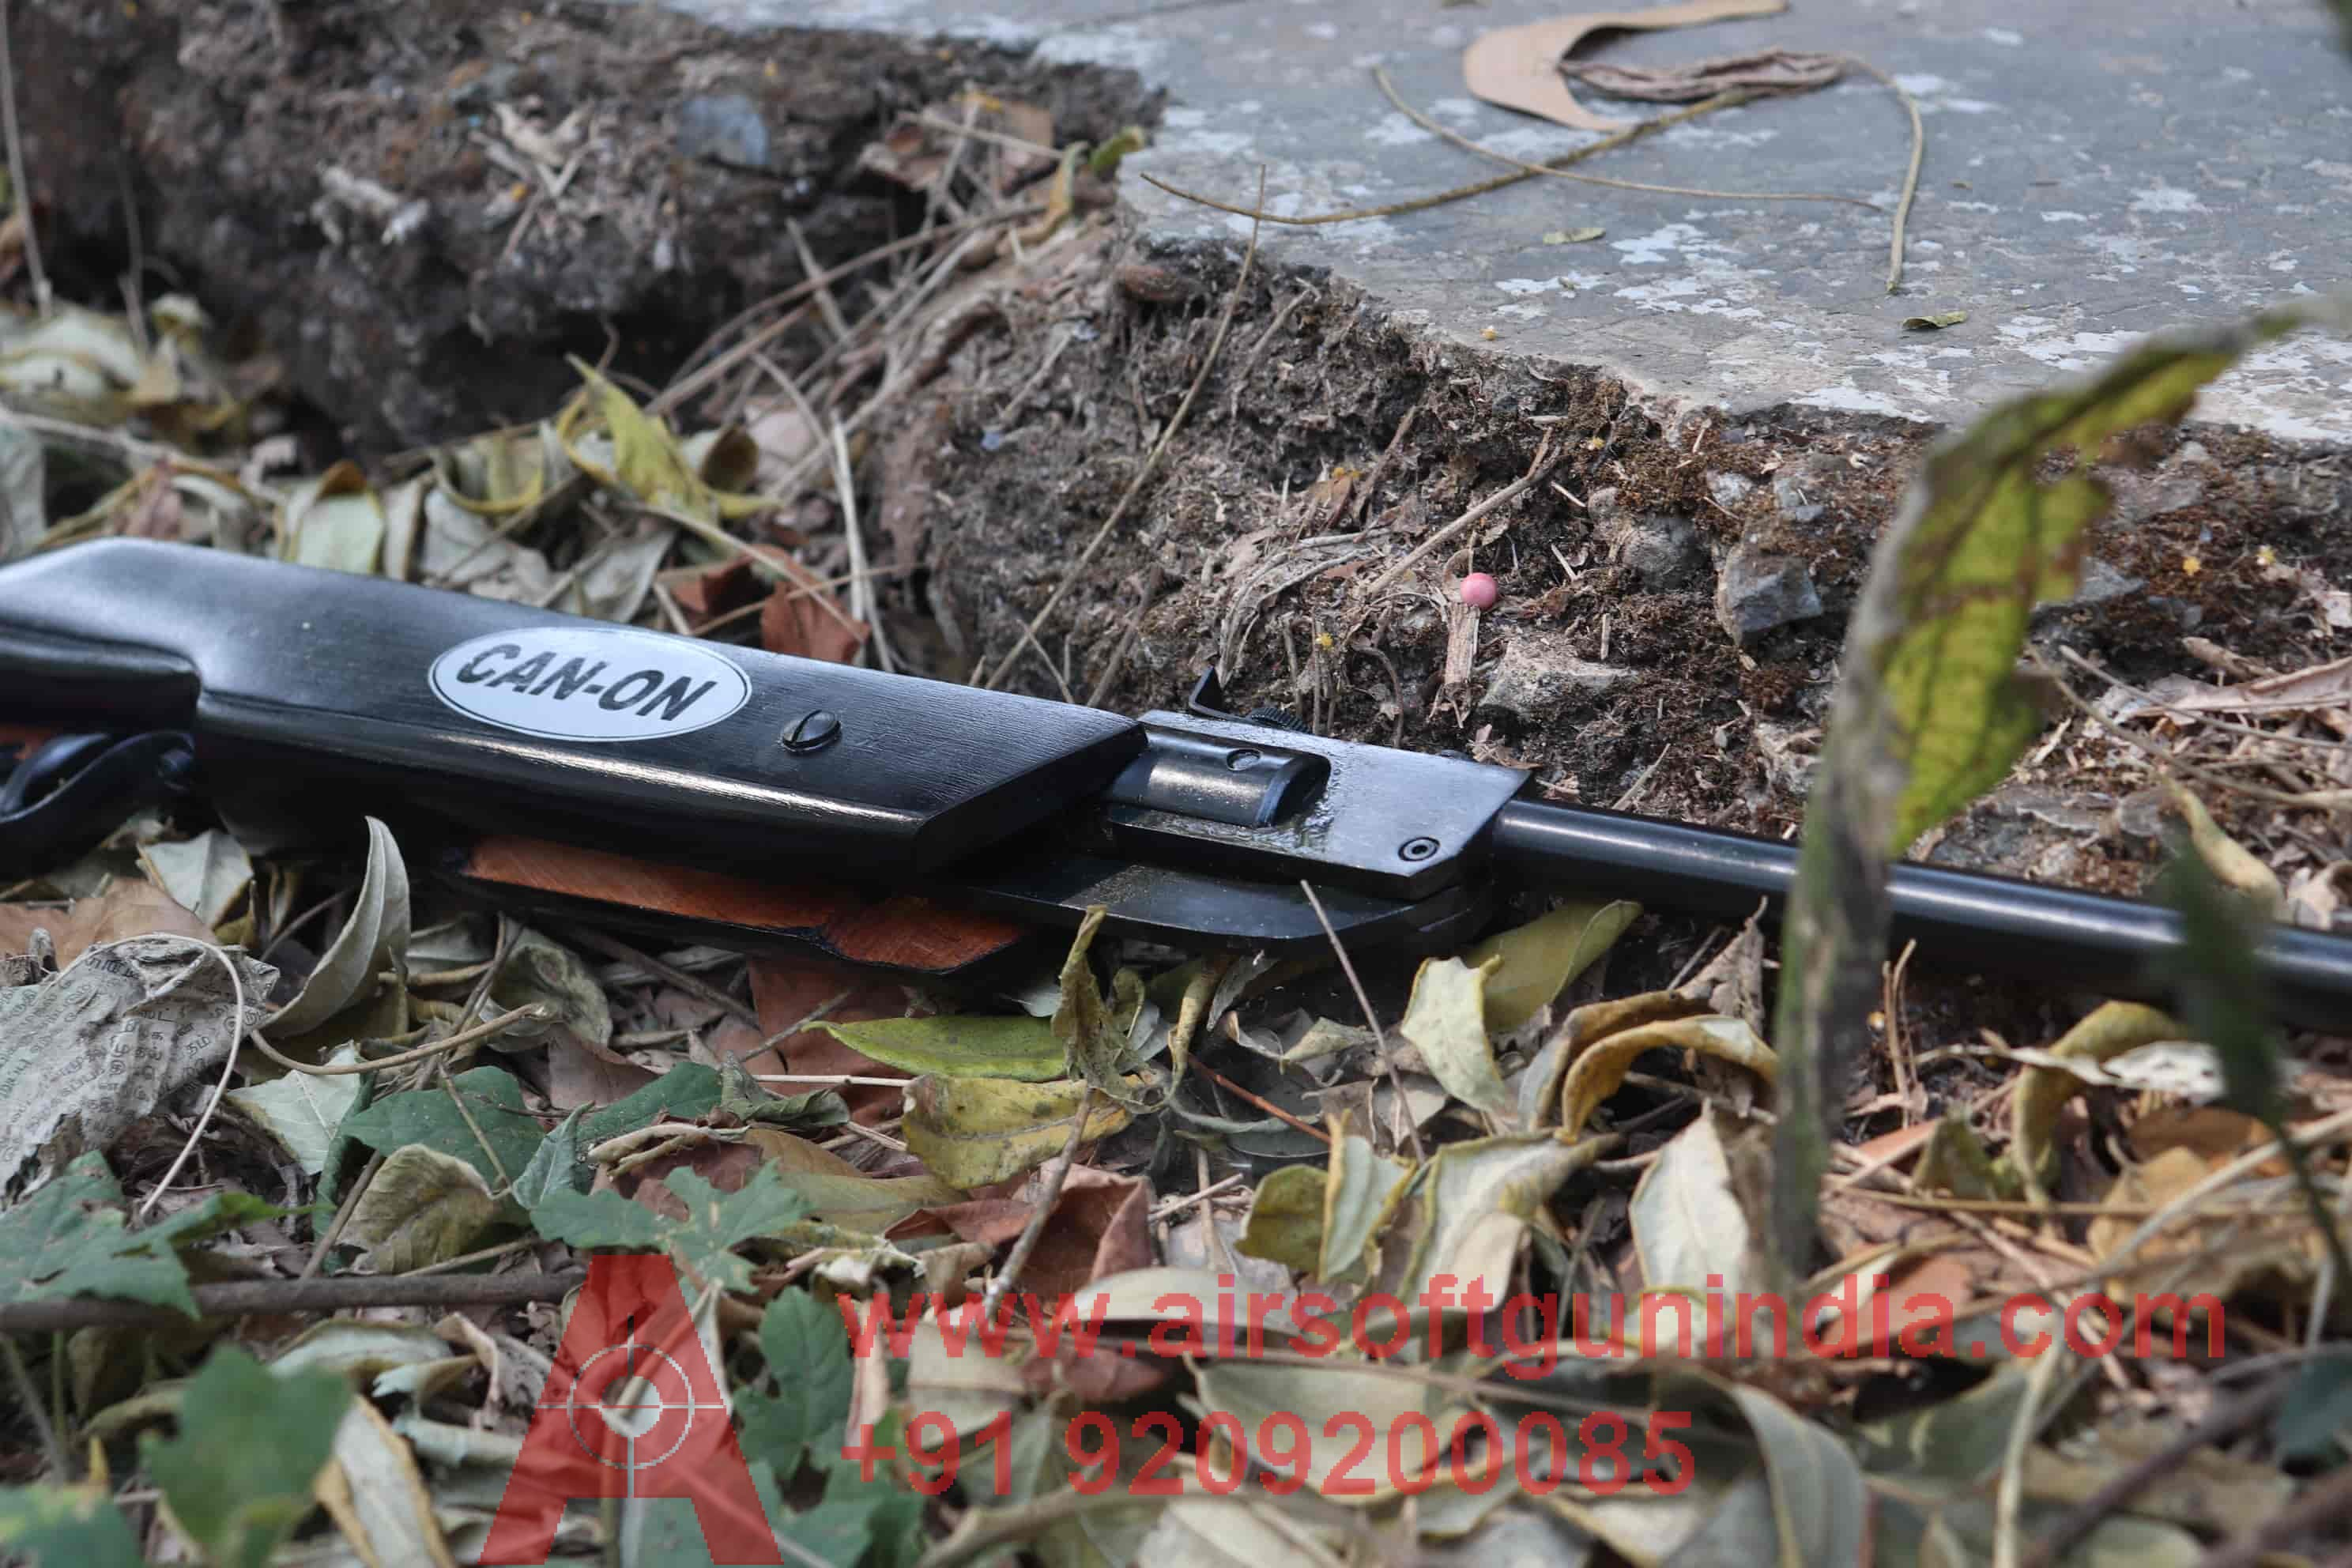 Canon Air Rifle .177 For Shooting Black Color Air Rifle In India